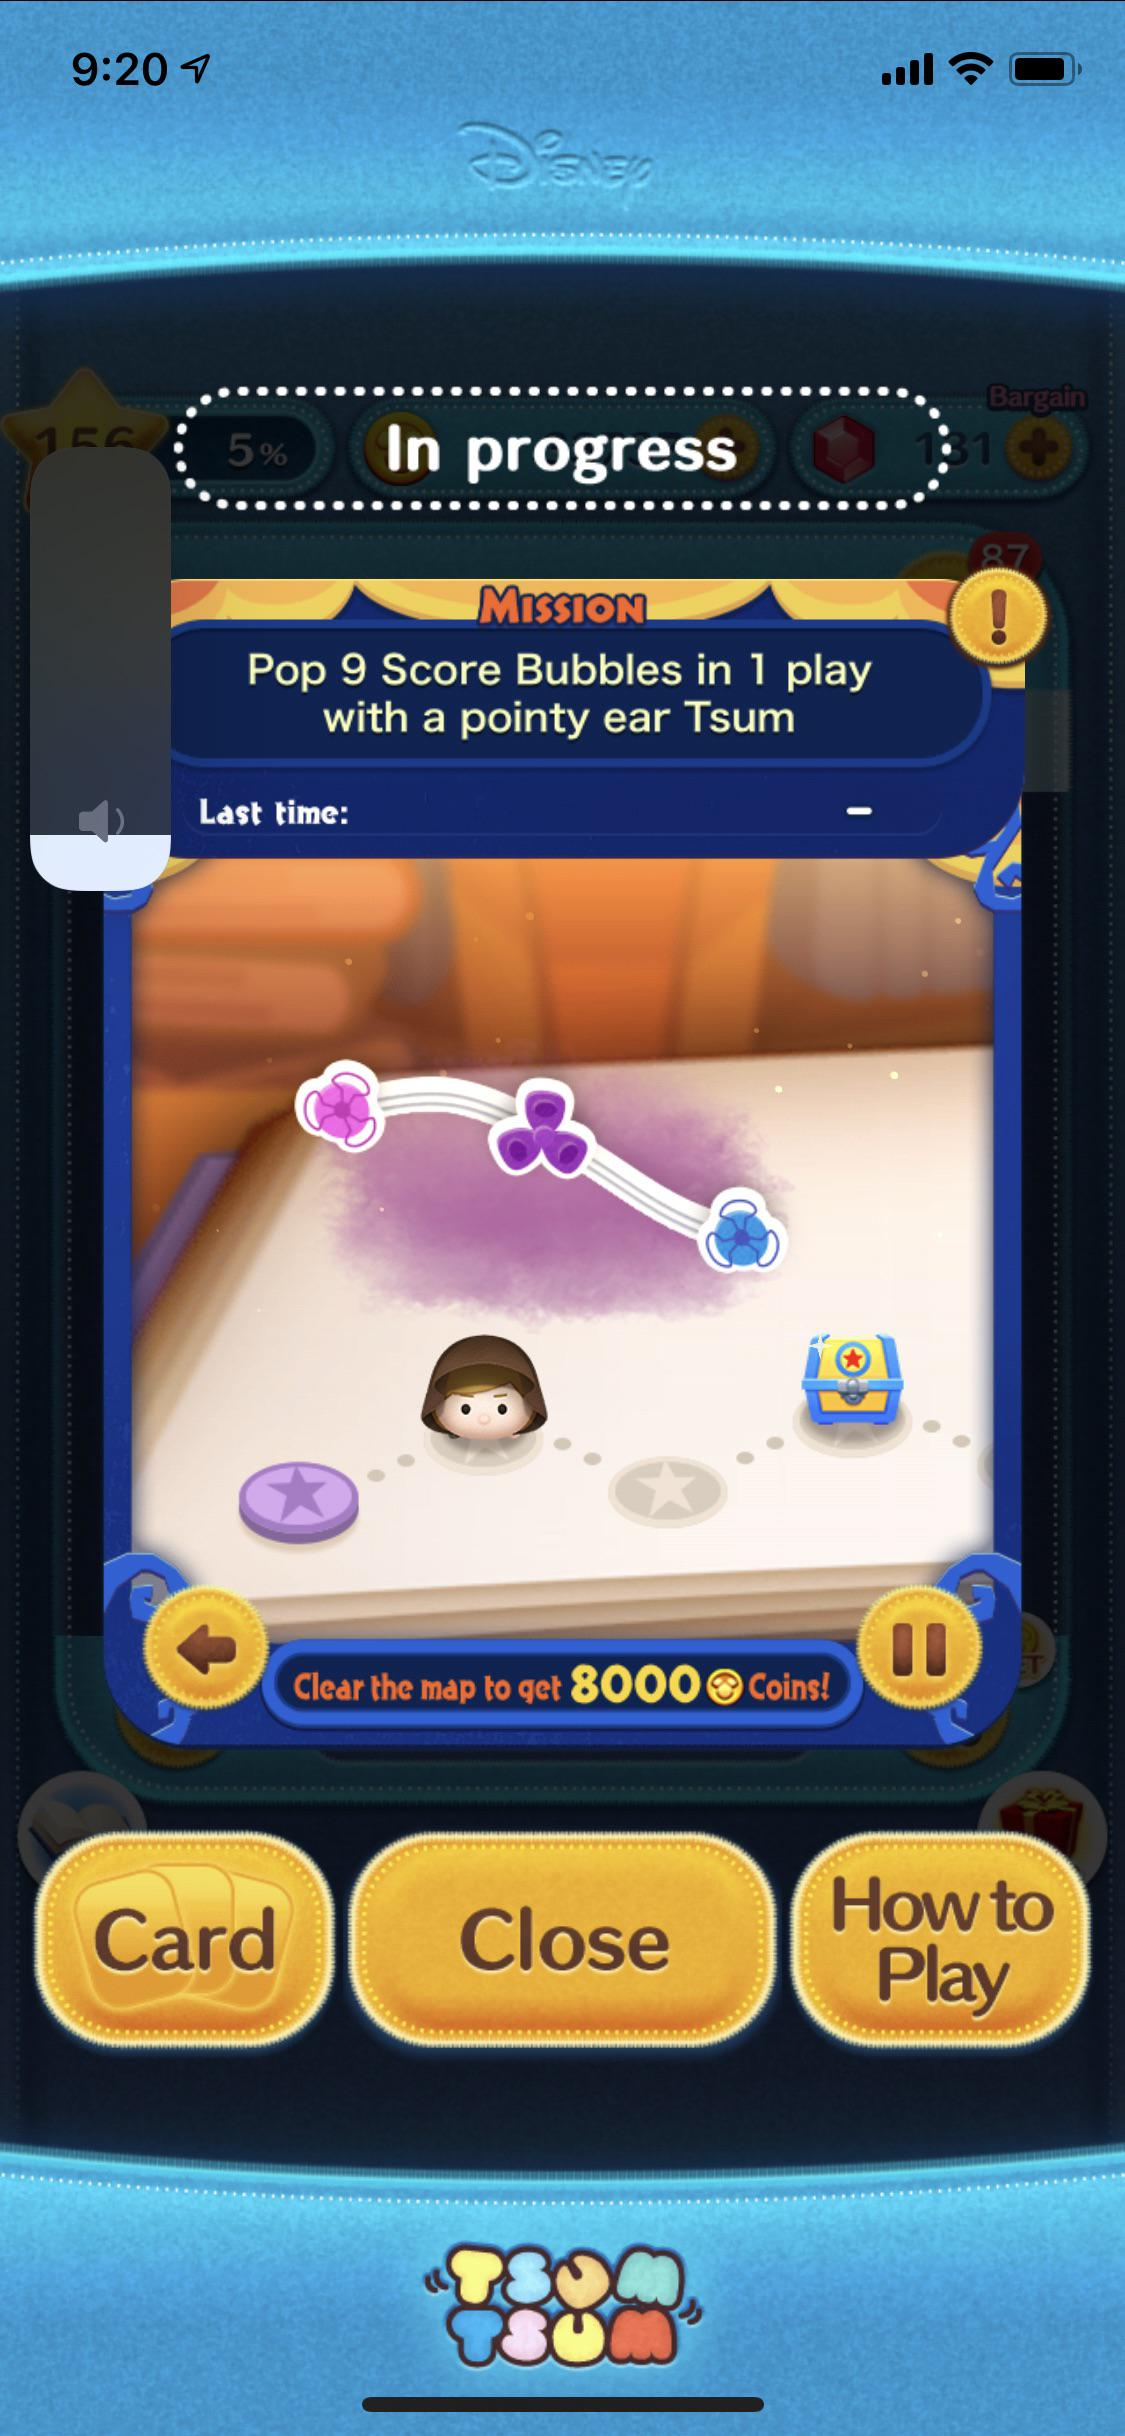 Tsum Tsum Coin Bubble : bubble, Thoughts, Which, Pointy, Score, Bubbles?, TsumTsum